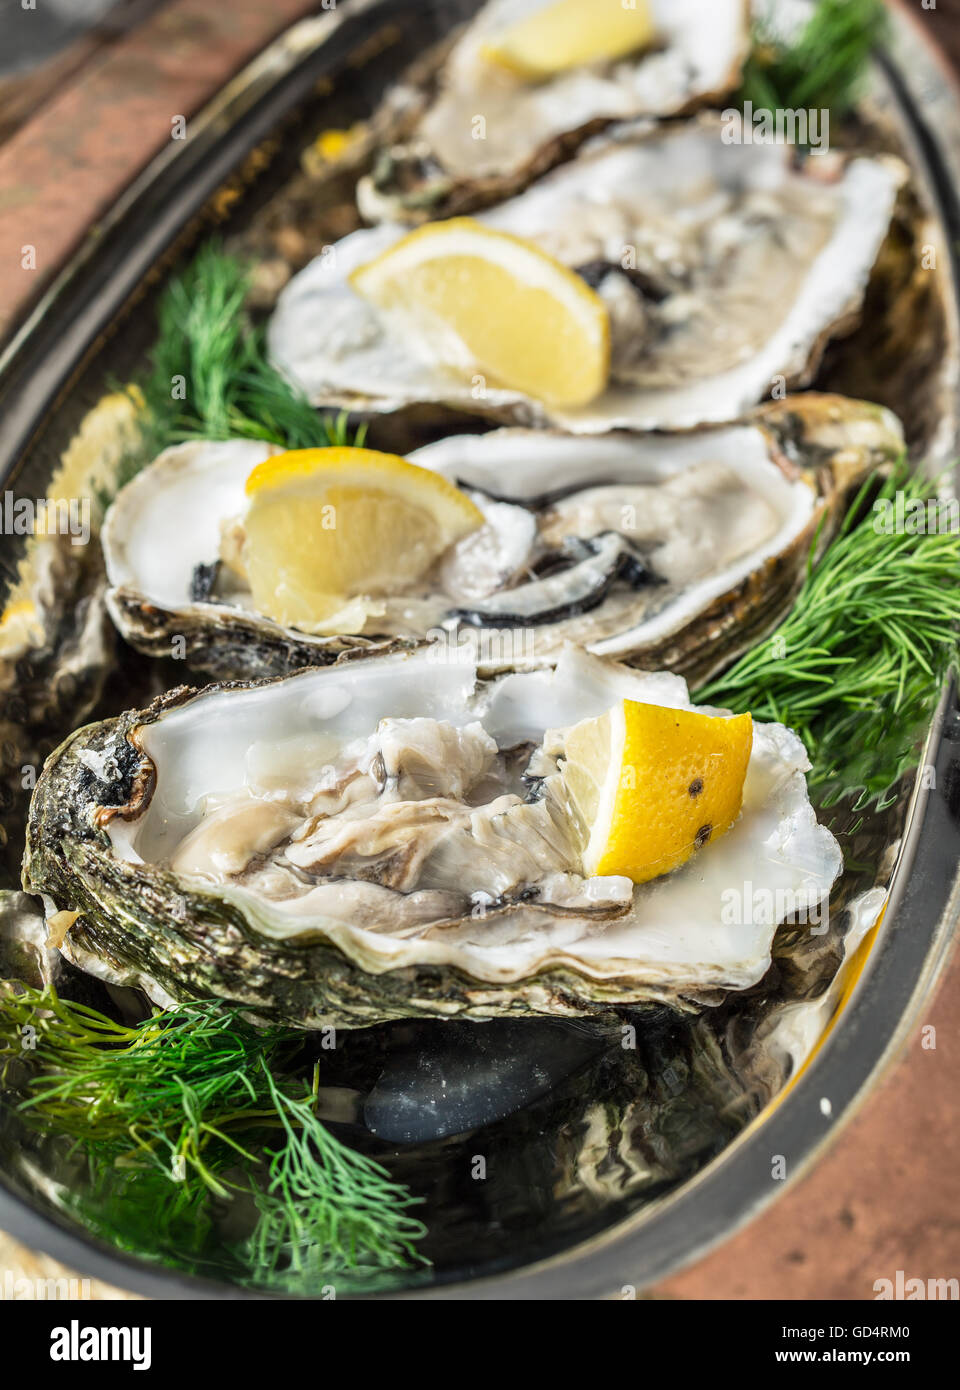 Opened oysters with piece of lemon on the cooper tray. - Stock Image